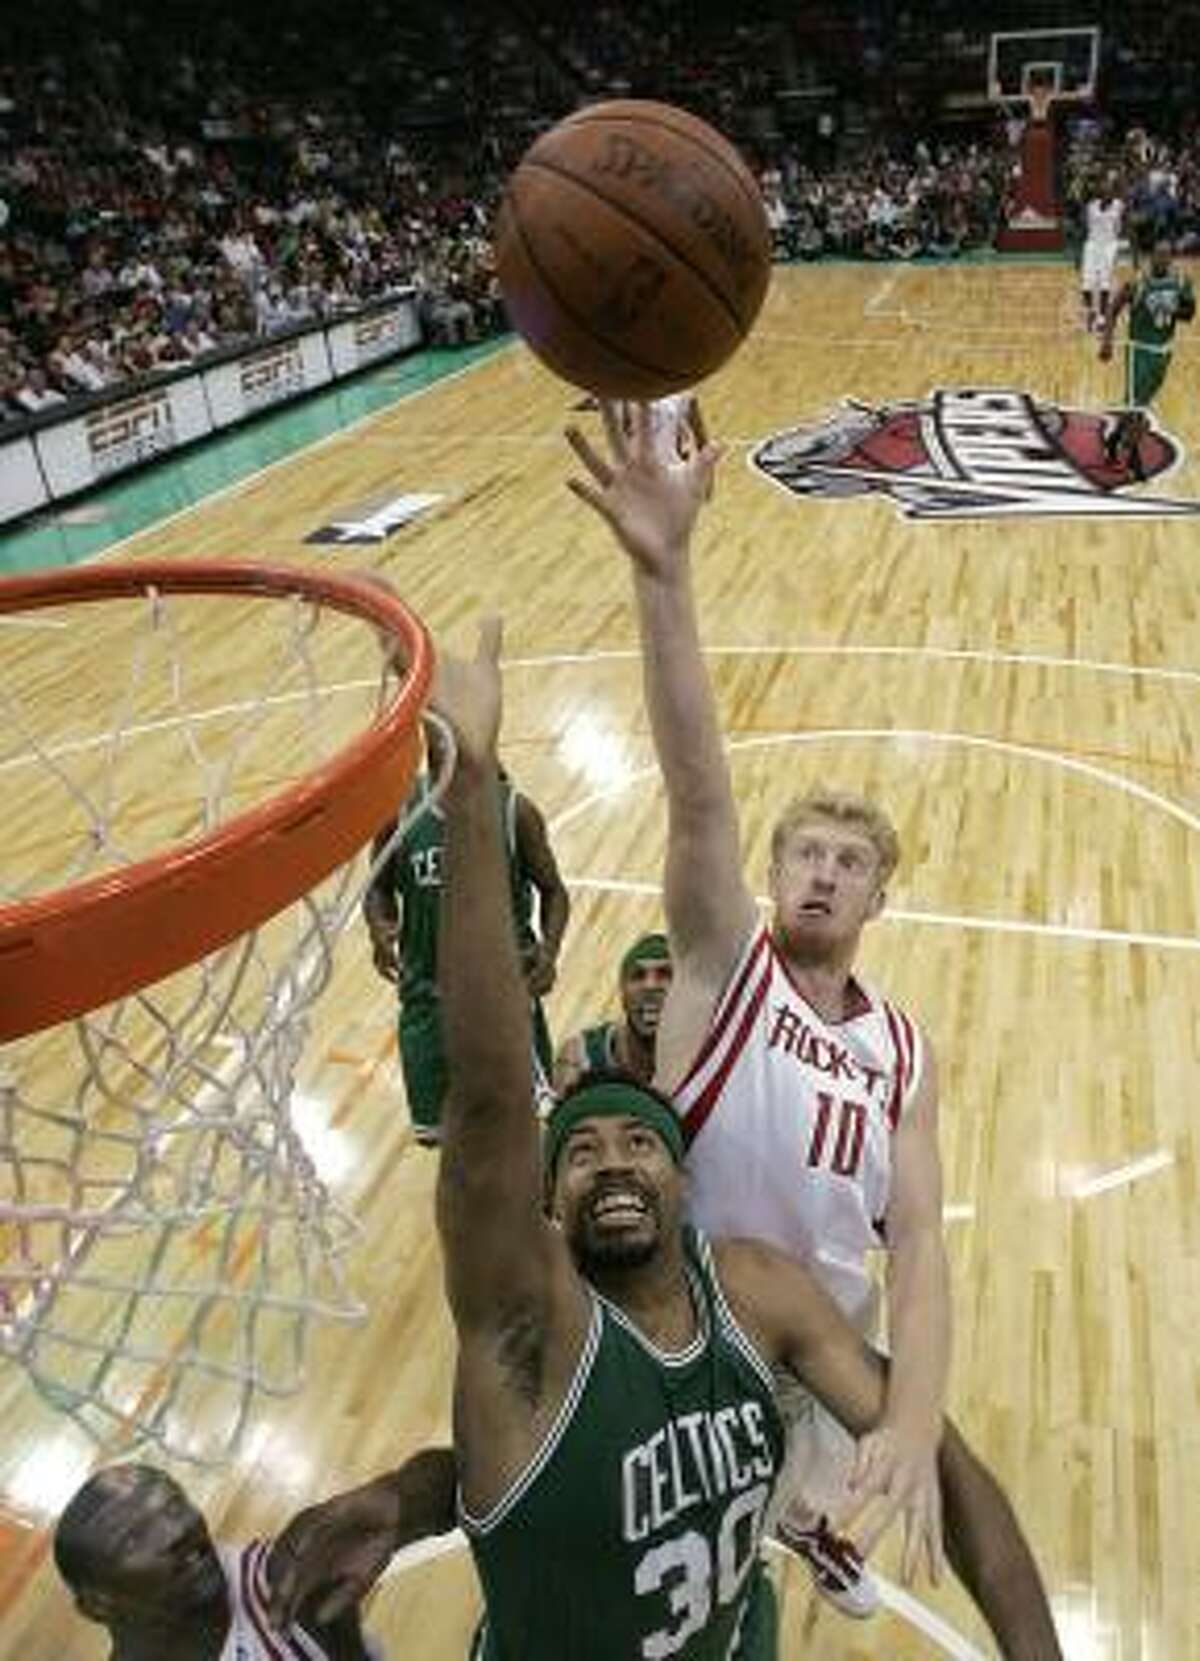 Chase Budinger (10) scored eight points and collected eight rebounds for the Rockets.